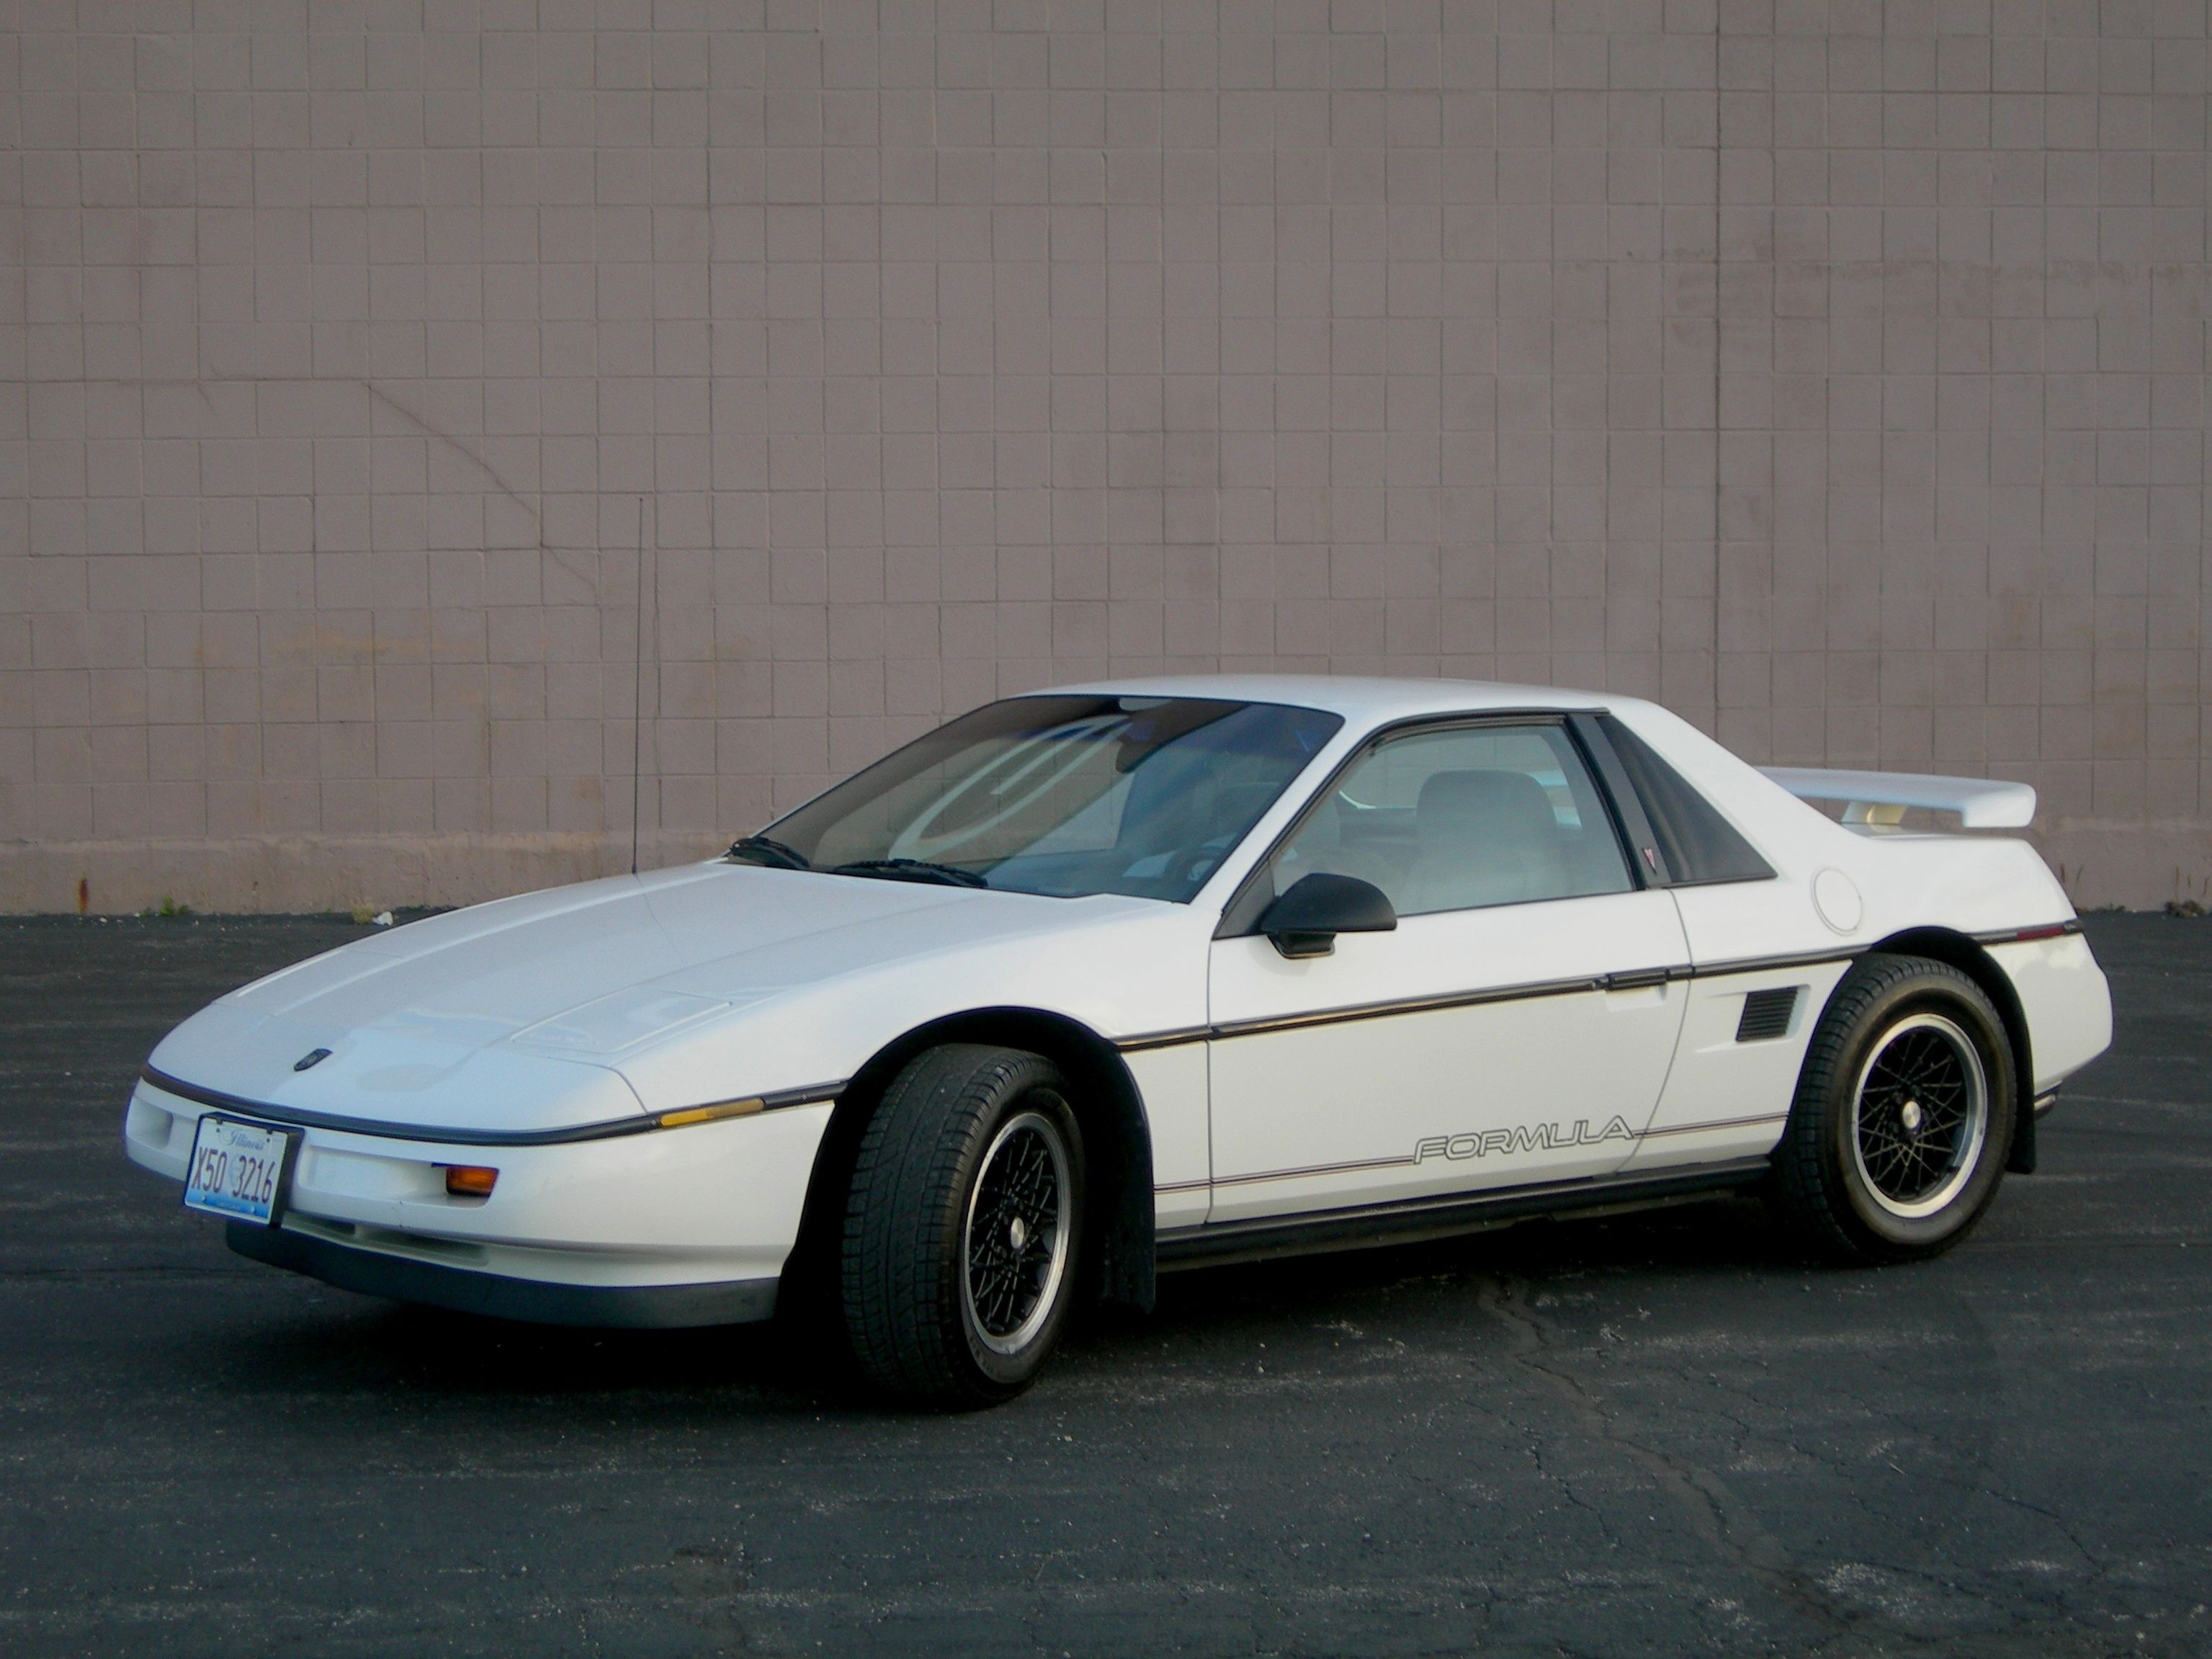 Pontiac Fiero - The complete information and online sale with free  shipping. Order and buy now for the lowest price in the best online store! 814fd61f1e7e